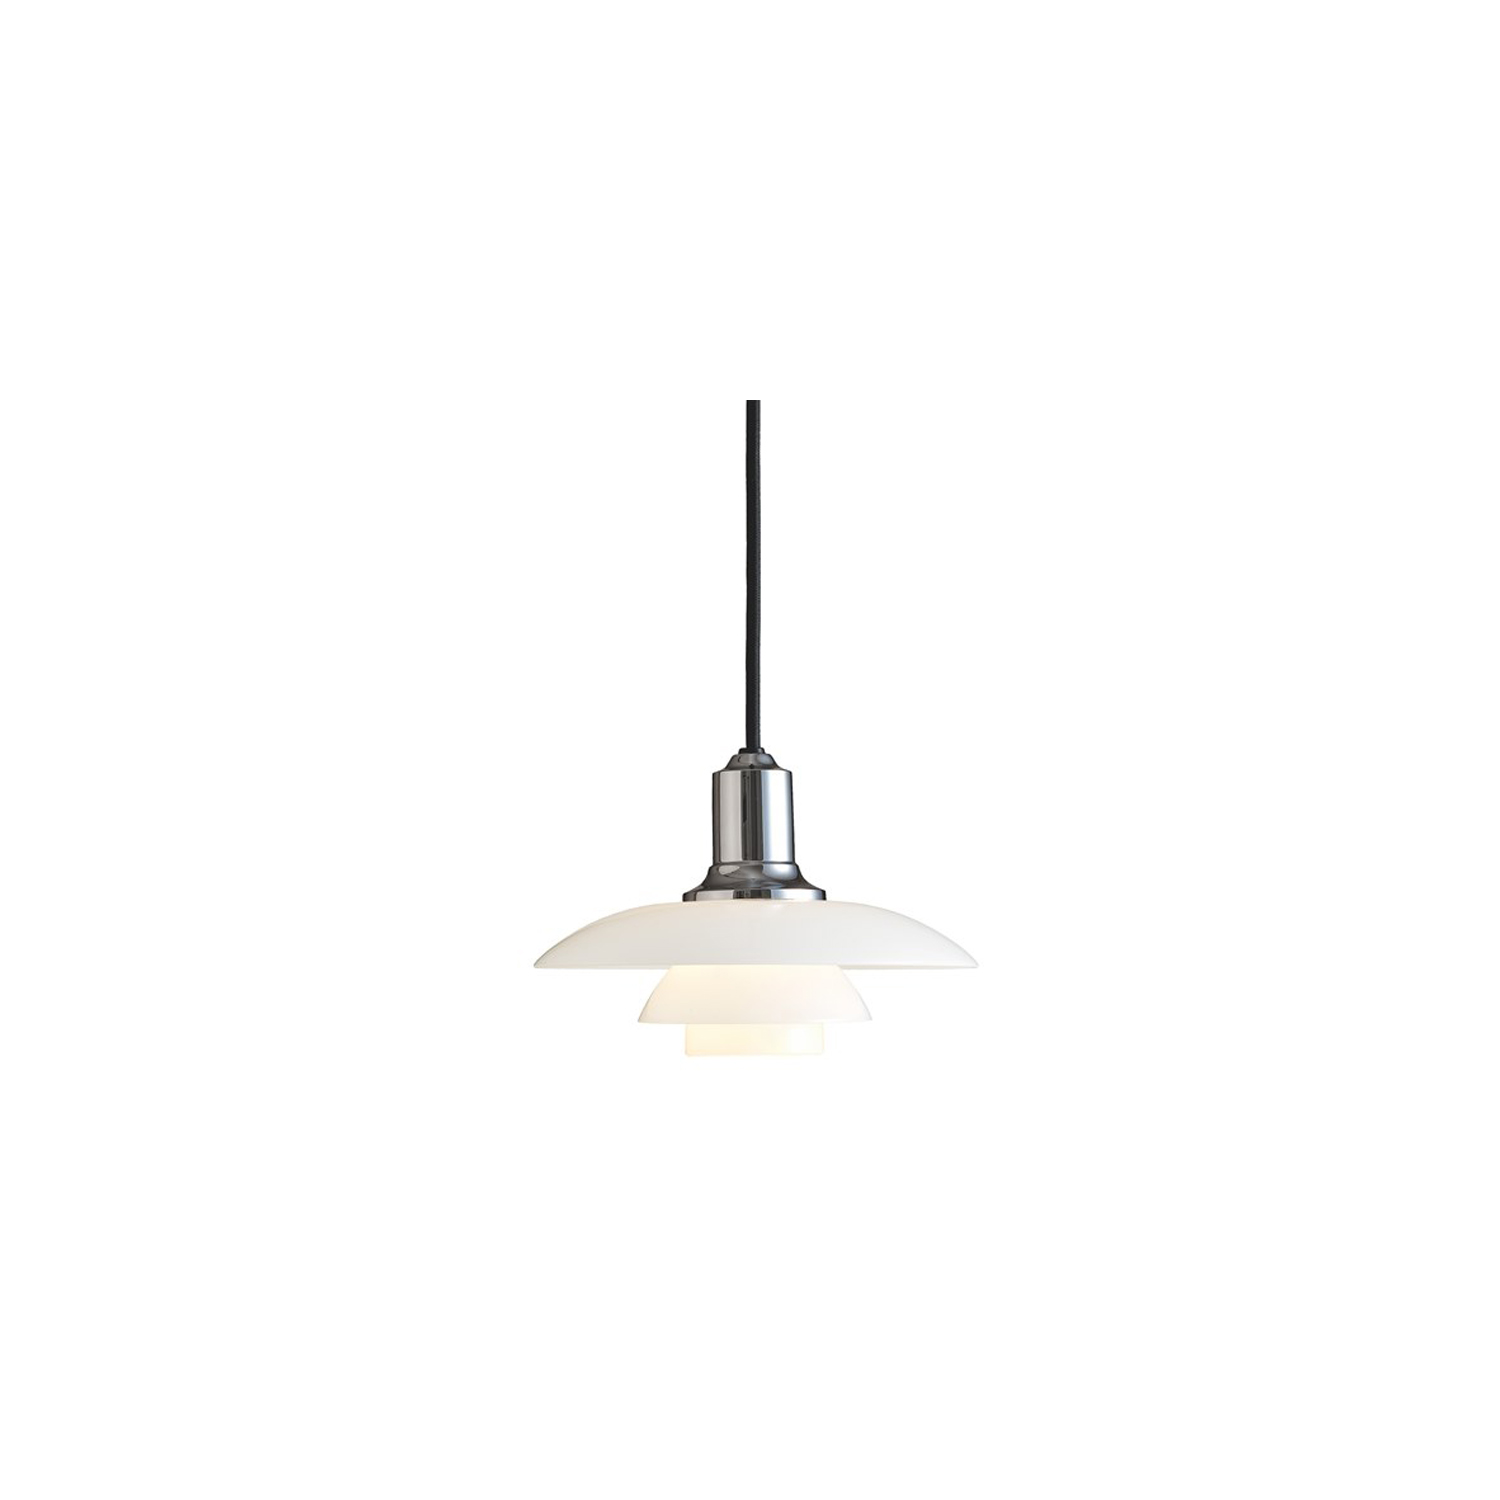 PH 2/1 Pendant Light - The fixture is designed based on the principle of a reflective three-shade system, which directs the majority of the light downwards. The shades are made of mouth-blown opal three-layer glass, which is glossy on top and sandblasted matt on the underside, giving a soft and uniform light distribution. | Matter of Stuff